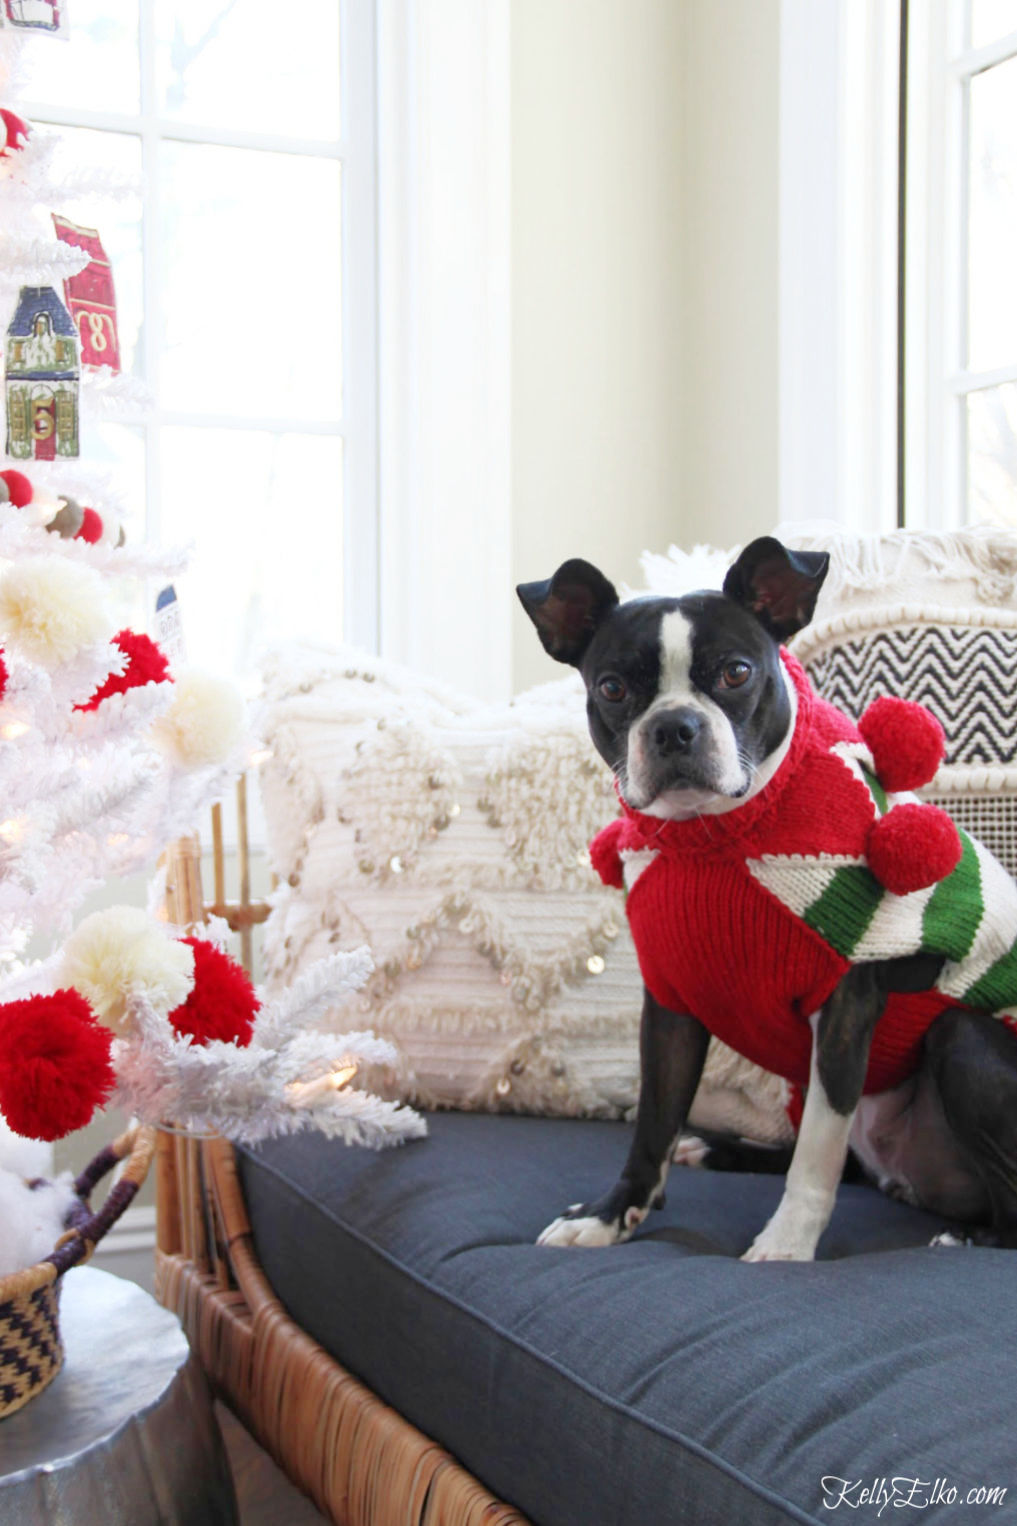 Creative Christmas Tour - how adorable is her Boston Terrier dressed in a red and green pom pom sweater kellyelko.com #christmas #christmasdecor #christmasdecorating #christmashome #christmastour #diychristmas #christmasideas #christmasmantel #christmastree #christmasornaments #vintagechristmas #farmhousechristmas #colorfulchristmas #creativechristmas #kellyelko #bostonterrier #pompoms #cutedogs #frenchbulldog #dogclothes